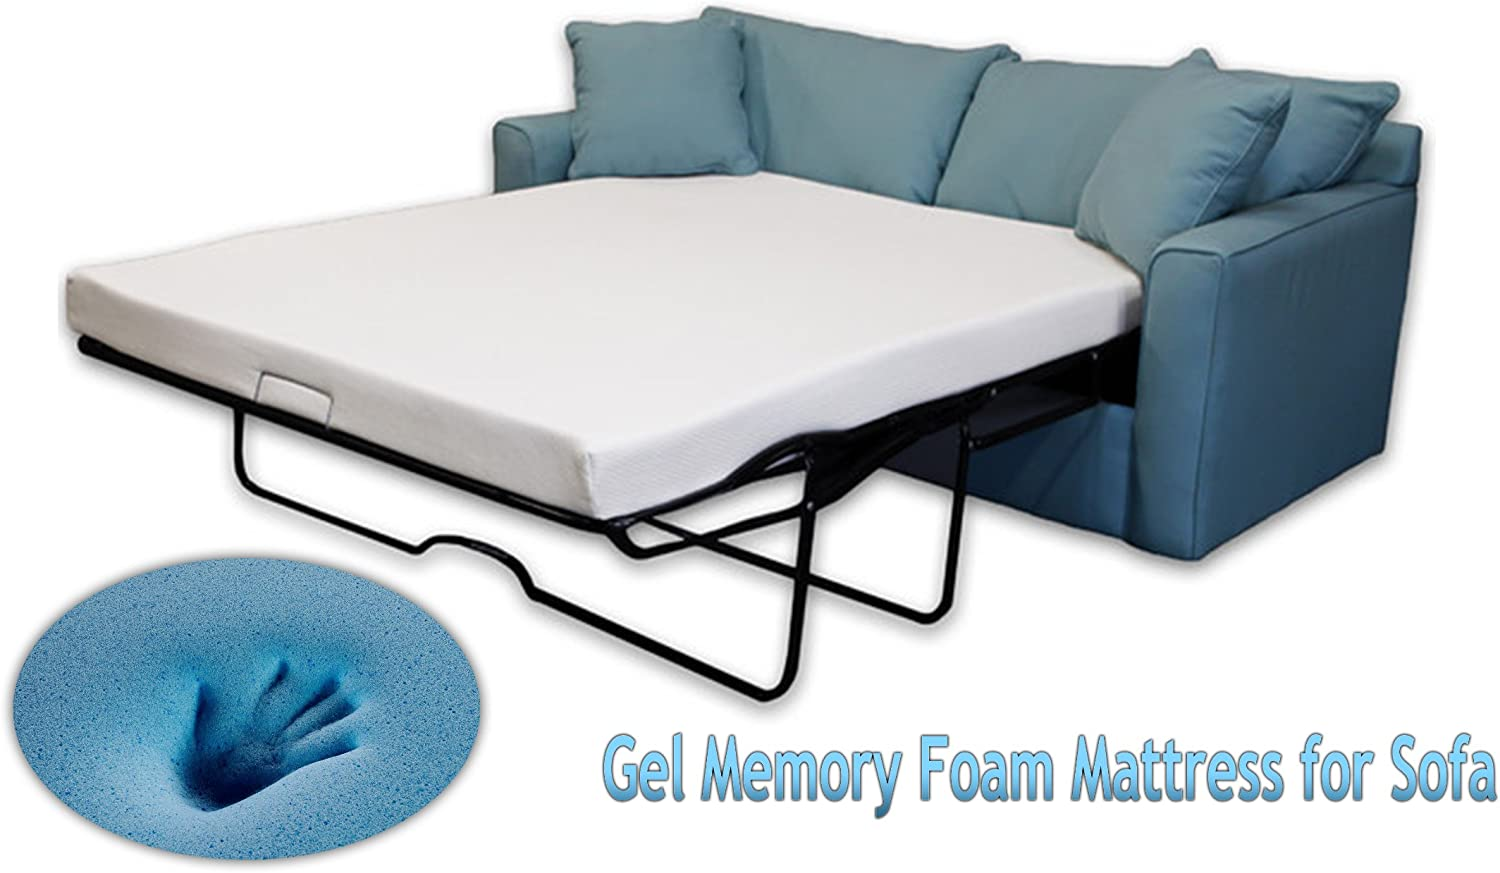 DynastyMattress 4.5-inch Gel Memory Foam Sofa Mattress